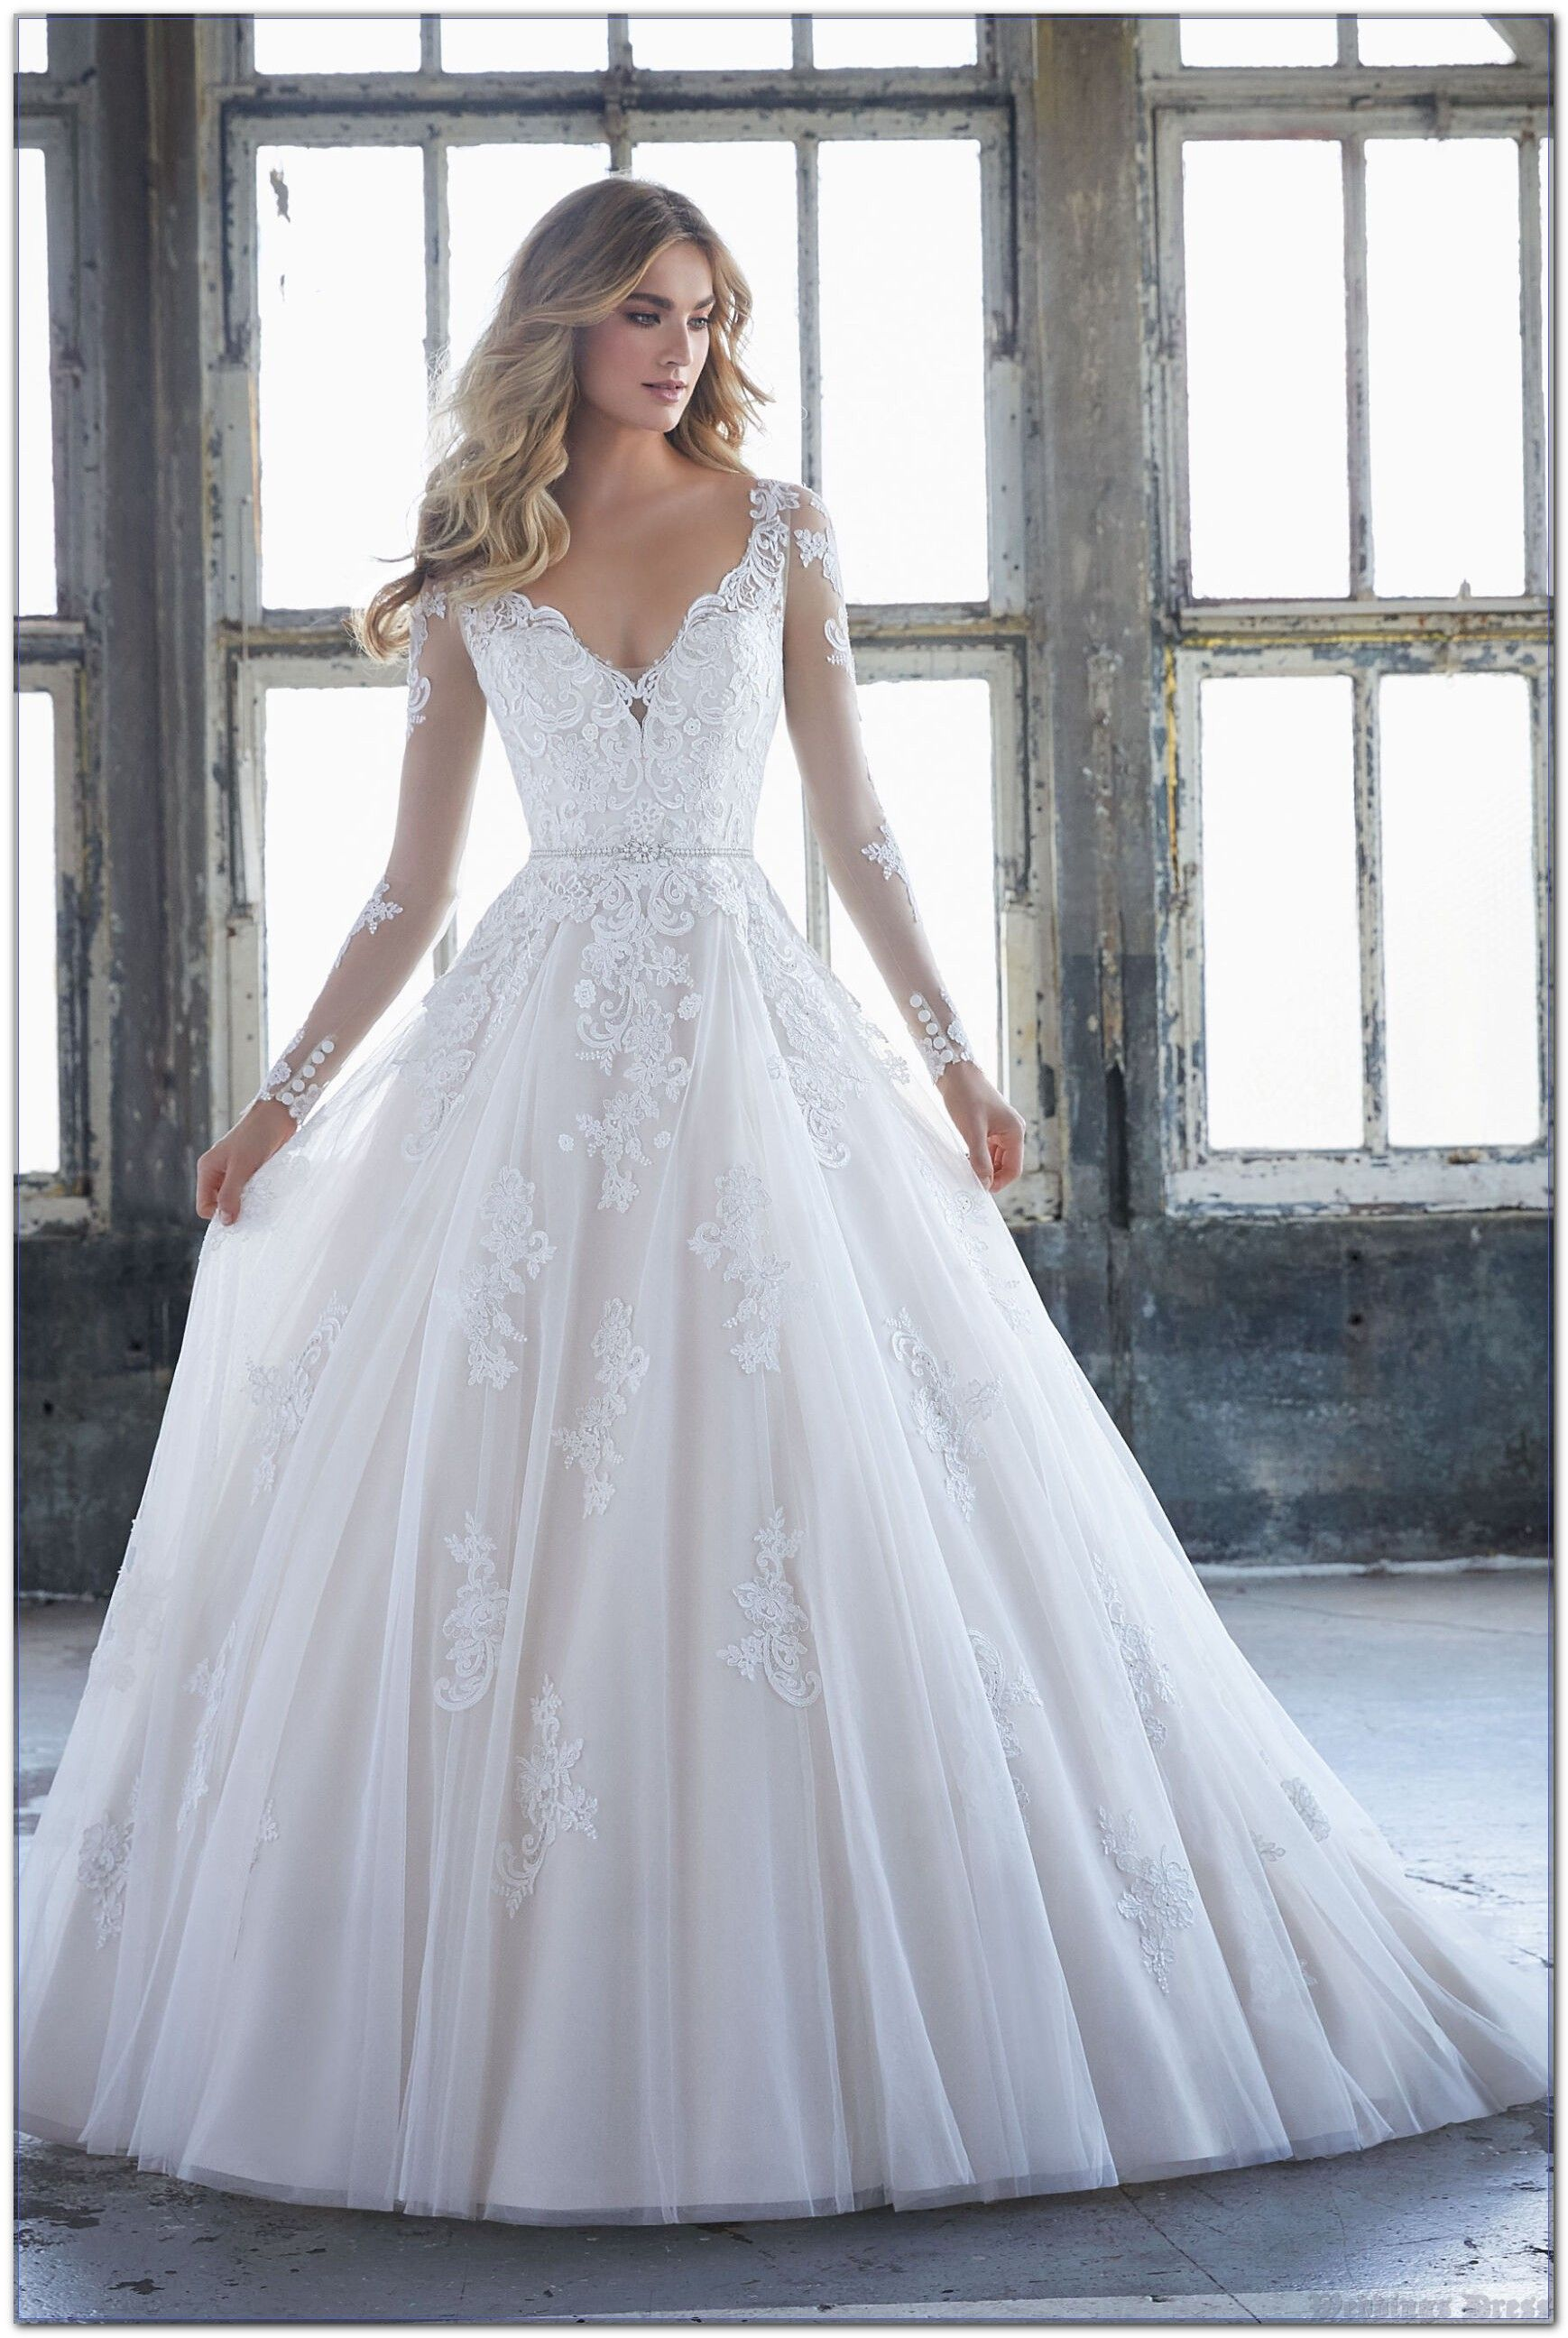 The Ultimate Deal On Weddings Dress